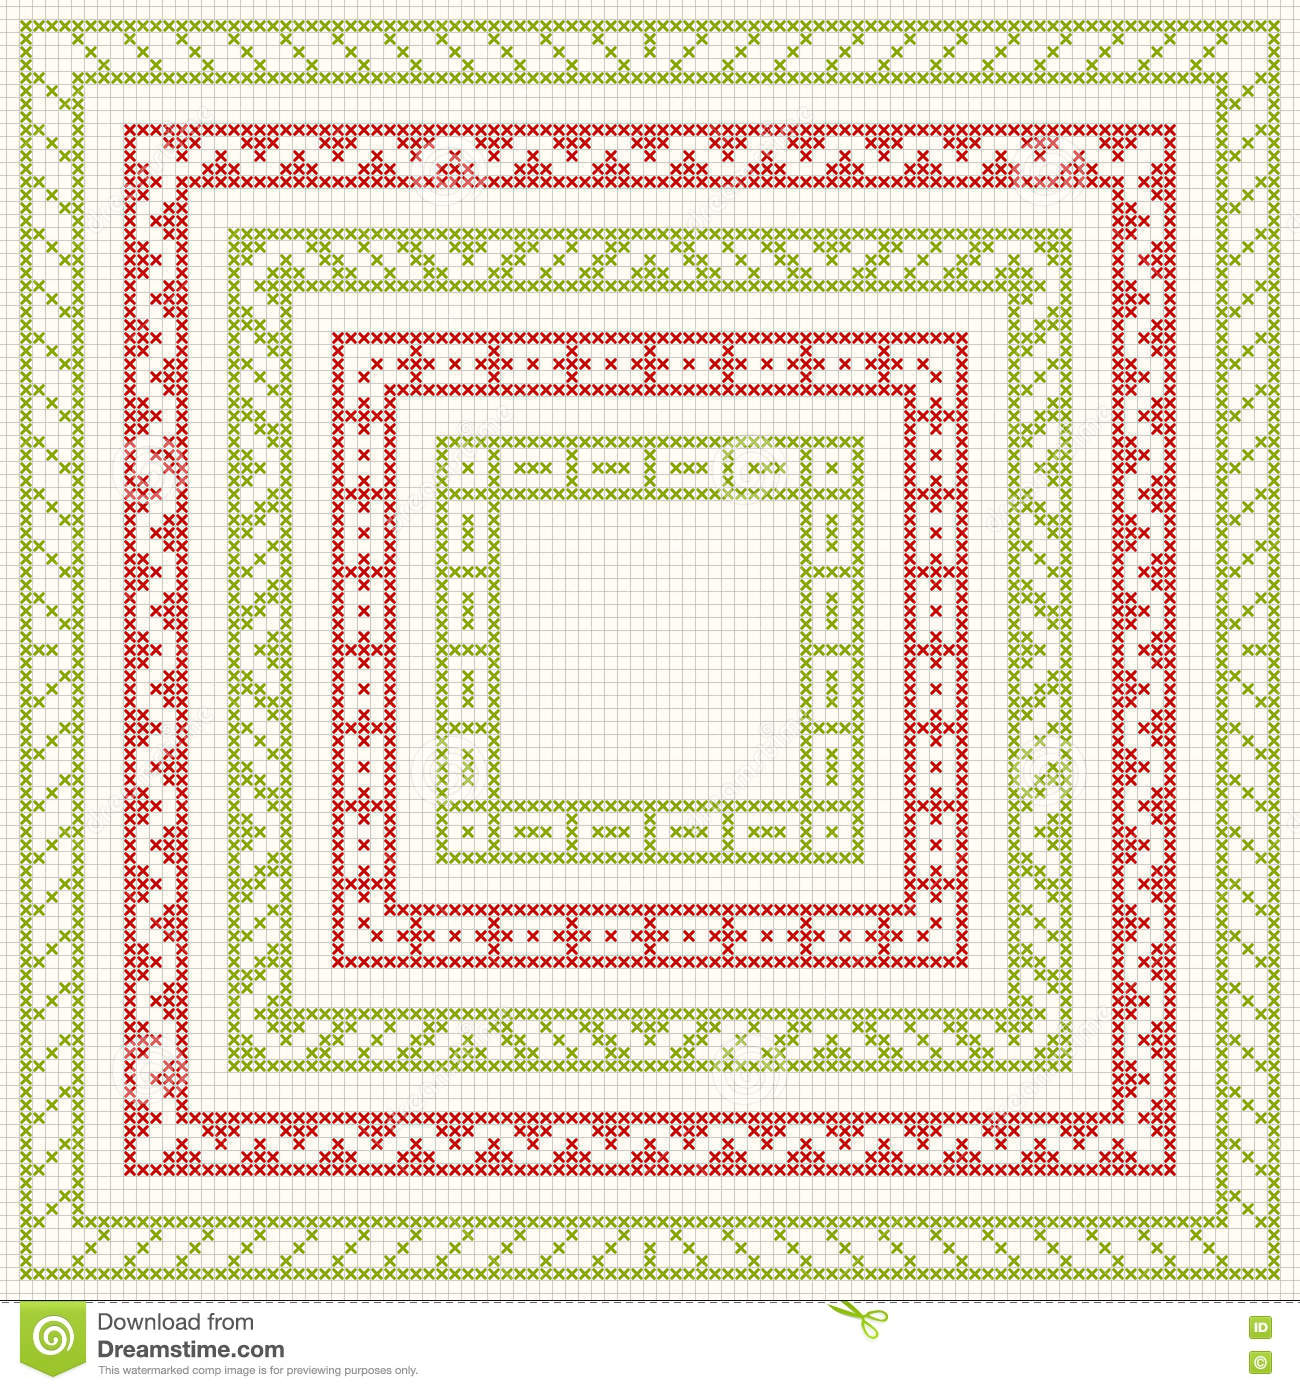 Five Frames For Christmas Cross-stitch Embroidery Stock Image ...